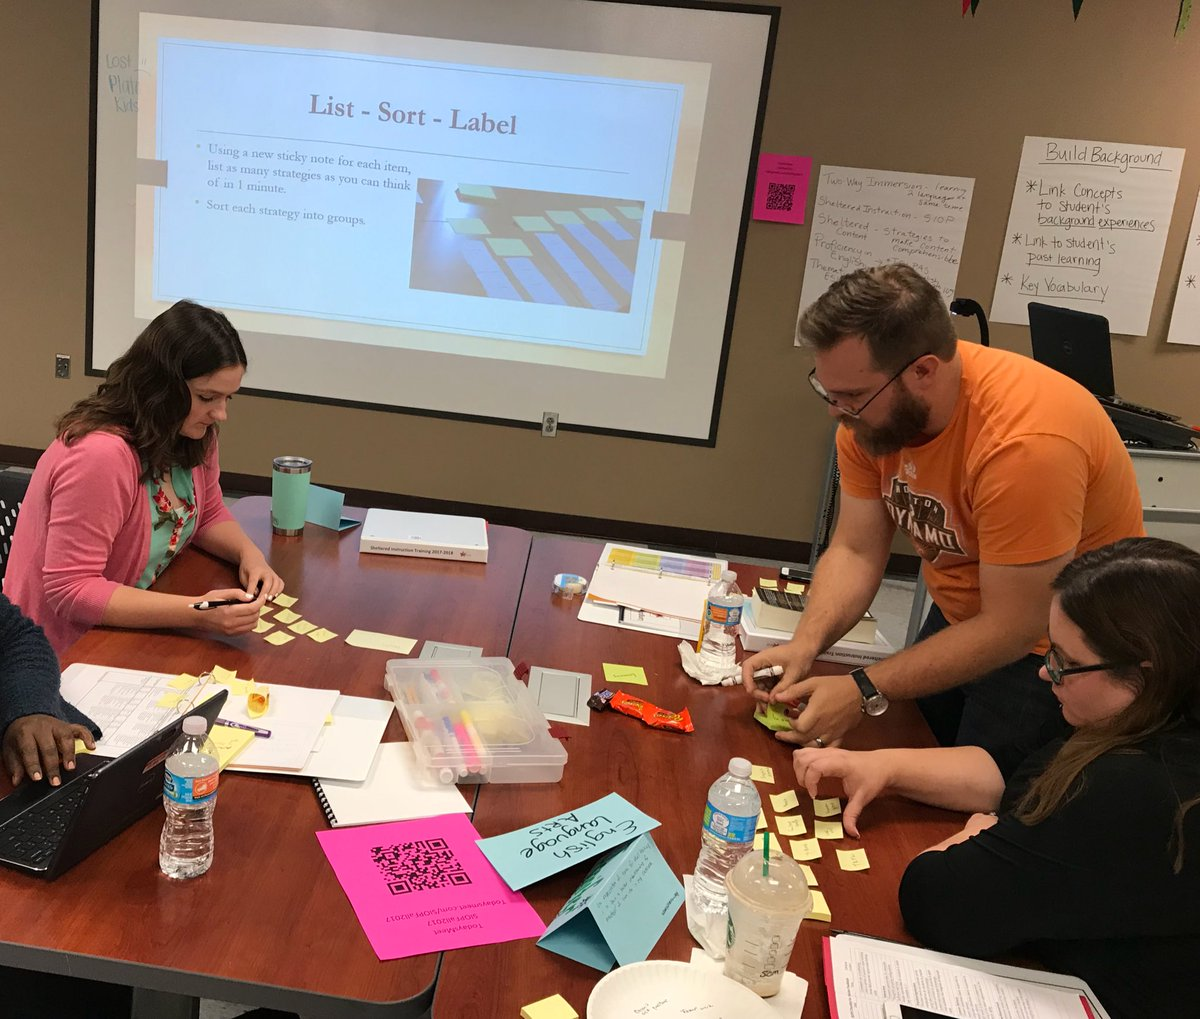 Andrea Morgan On Twitter Ts List Sort And Label Instructional